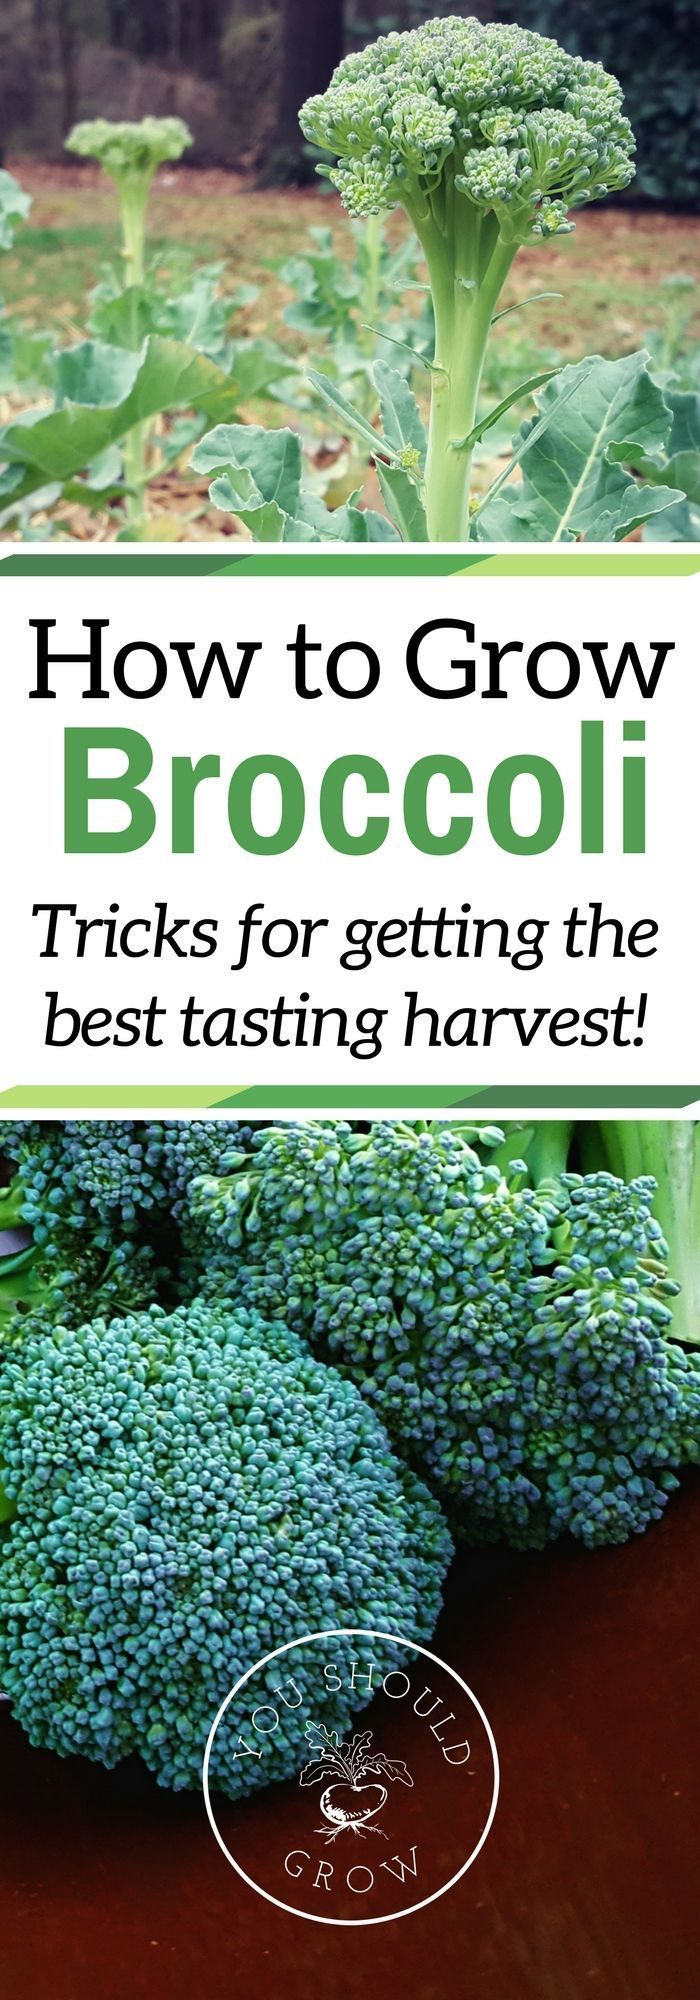 If you've had trouble growing broccoli before, read these tips for getting a tasty crop. Grow your own delicious broccoli in your garden. via /whippoorwillgar/